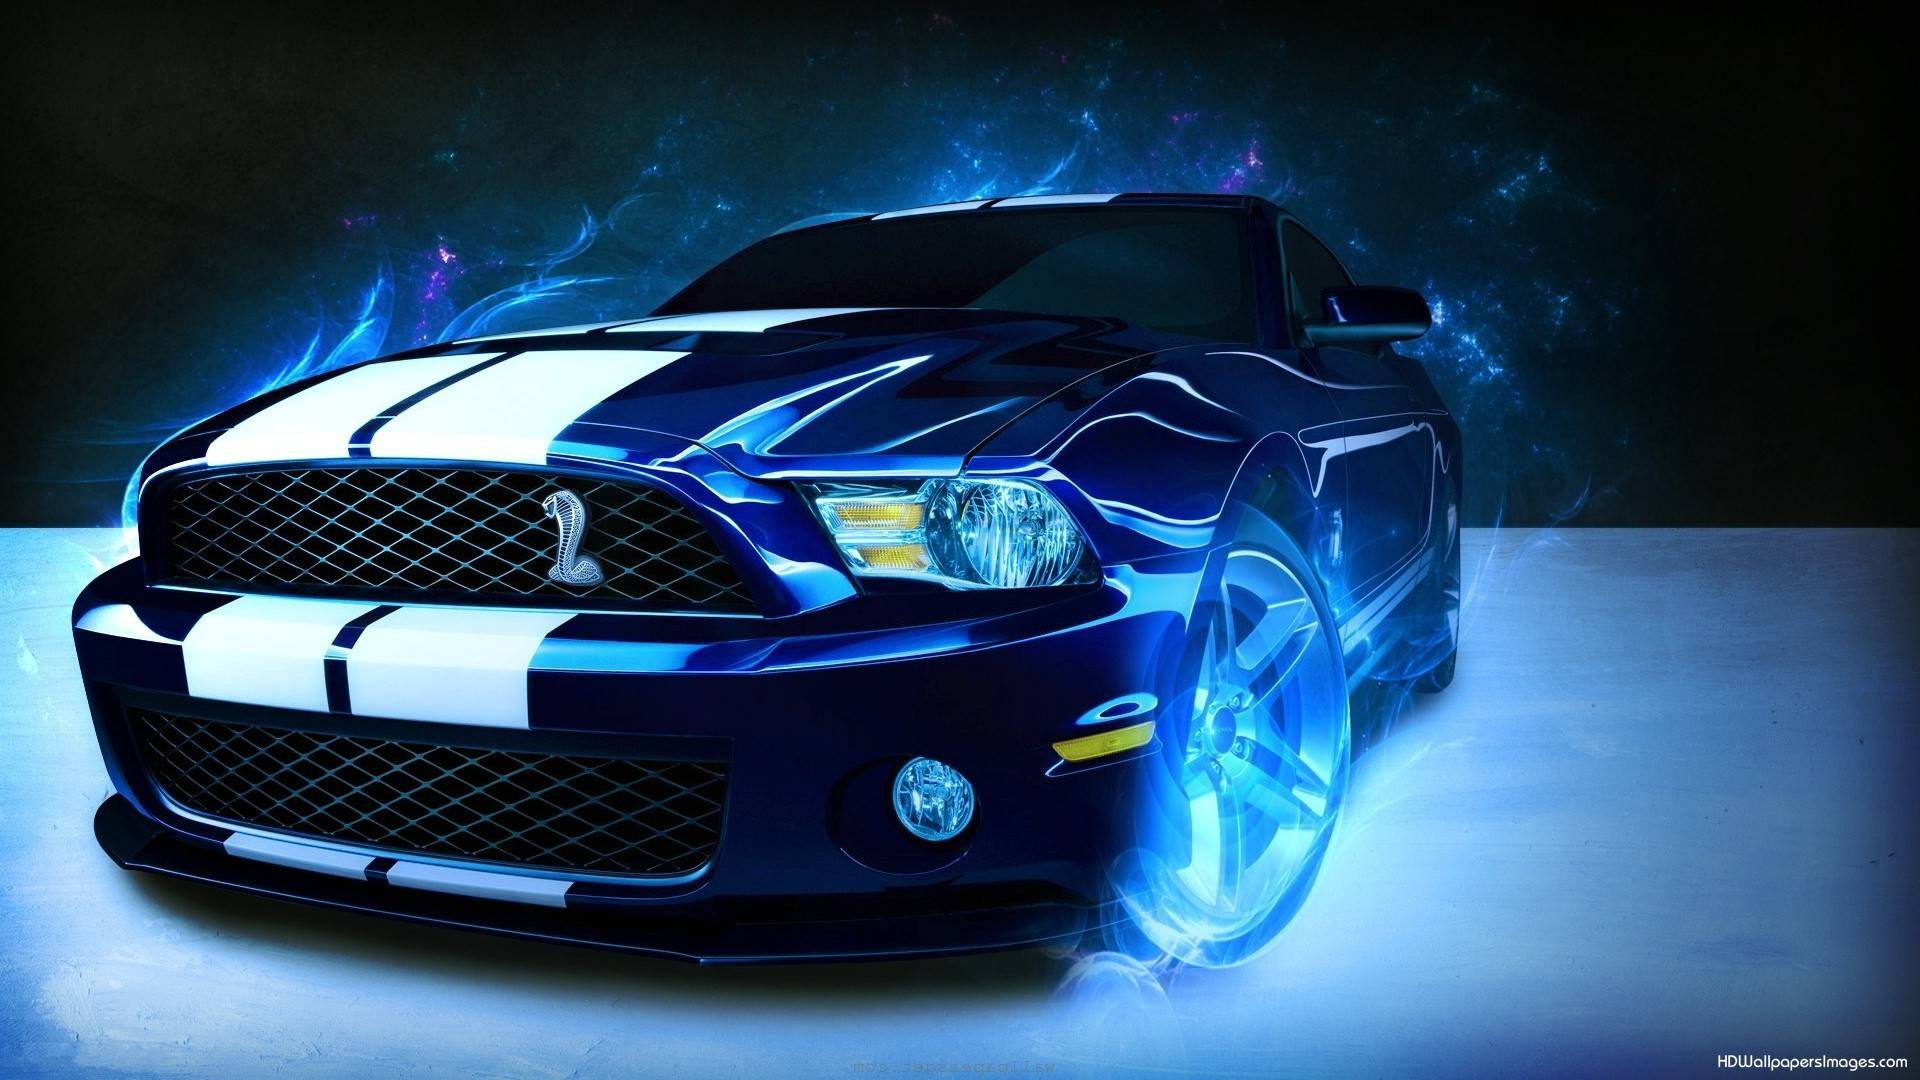 Mustang Hd Wallpaper Car Wallpapers Mustang Hd 240x400 Ford